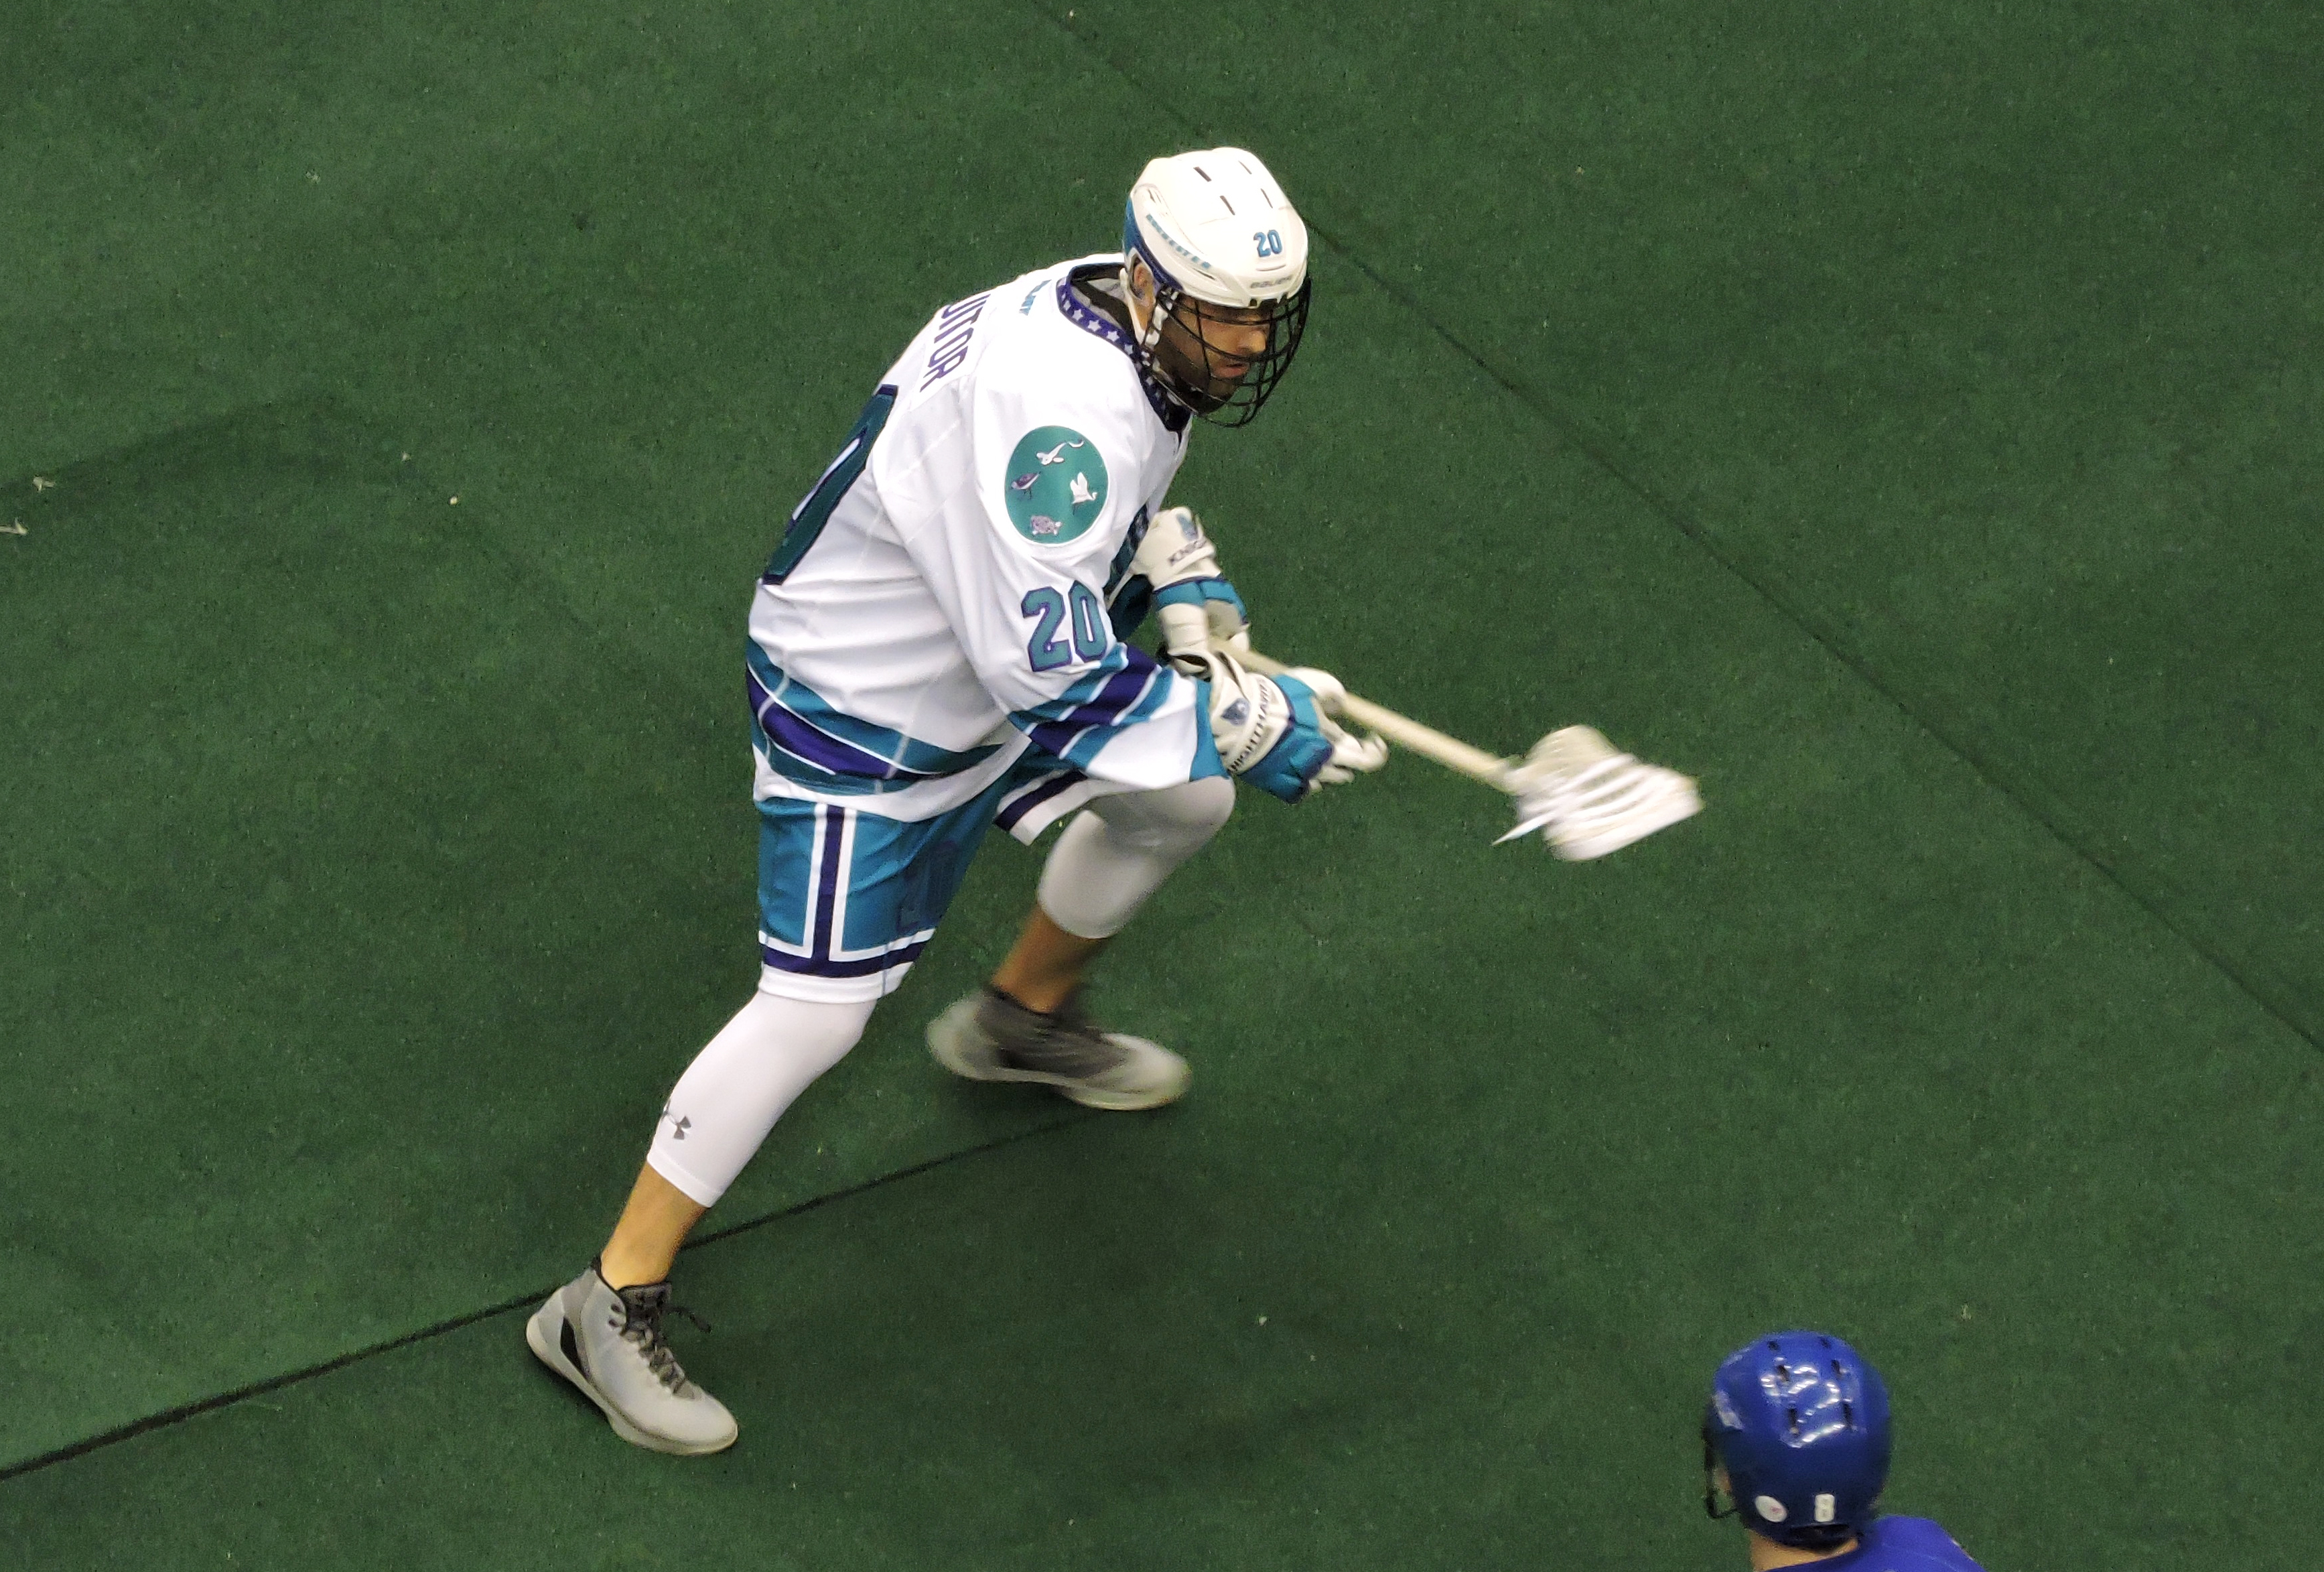 Andrew Suitor plays in his first game for the Rochester Knighthawks on January 28, 2017 (Photo credit: Anna Taylor)